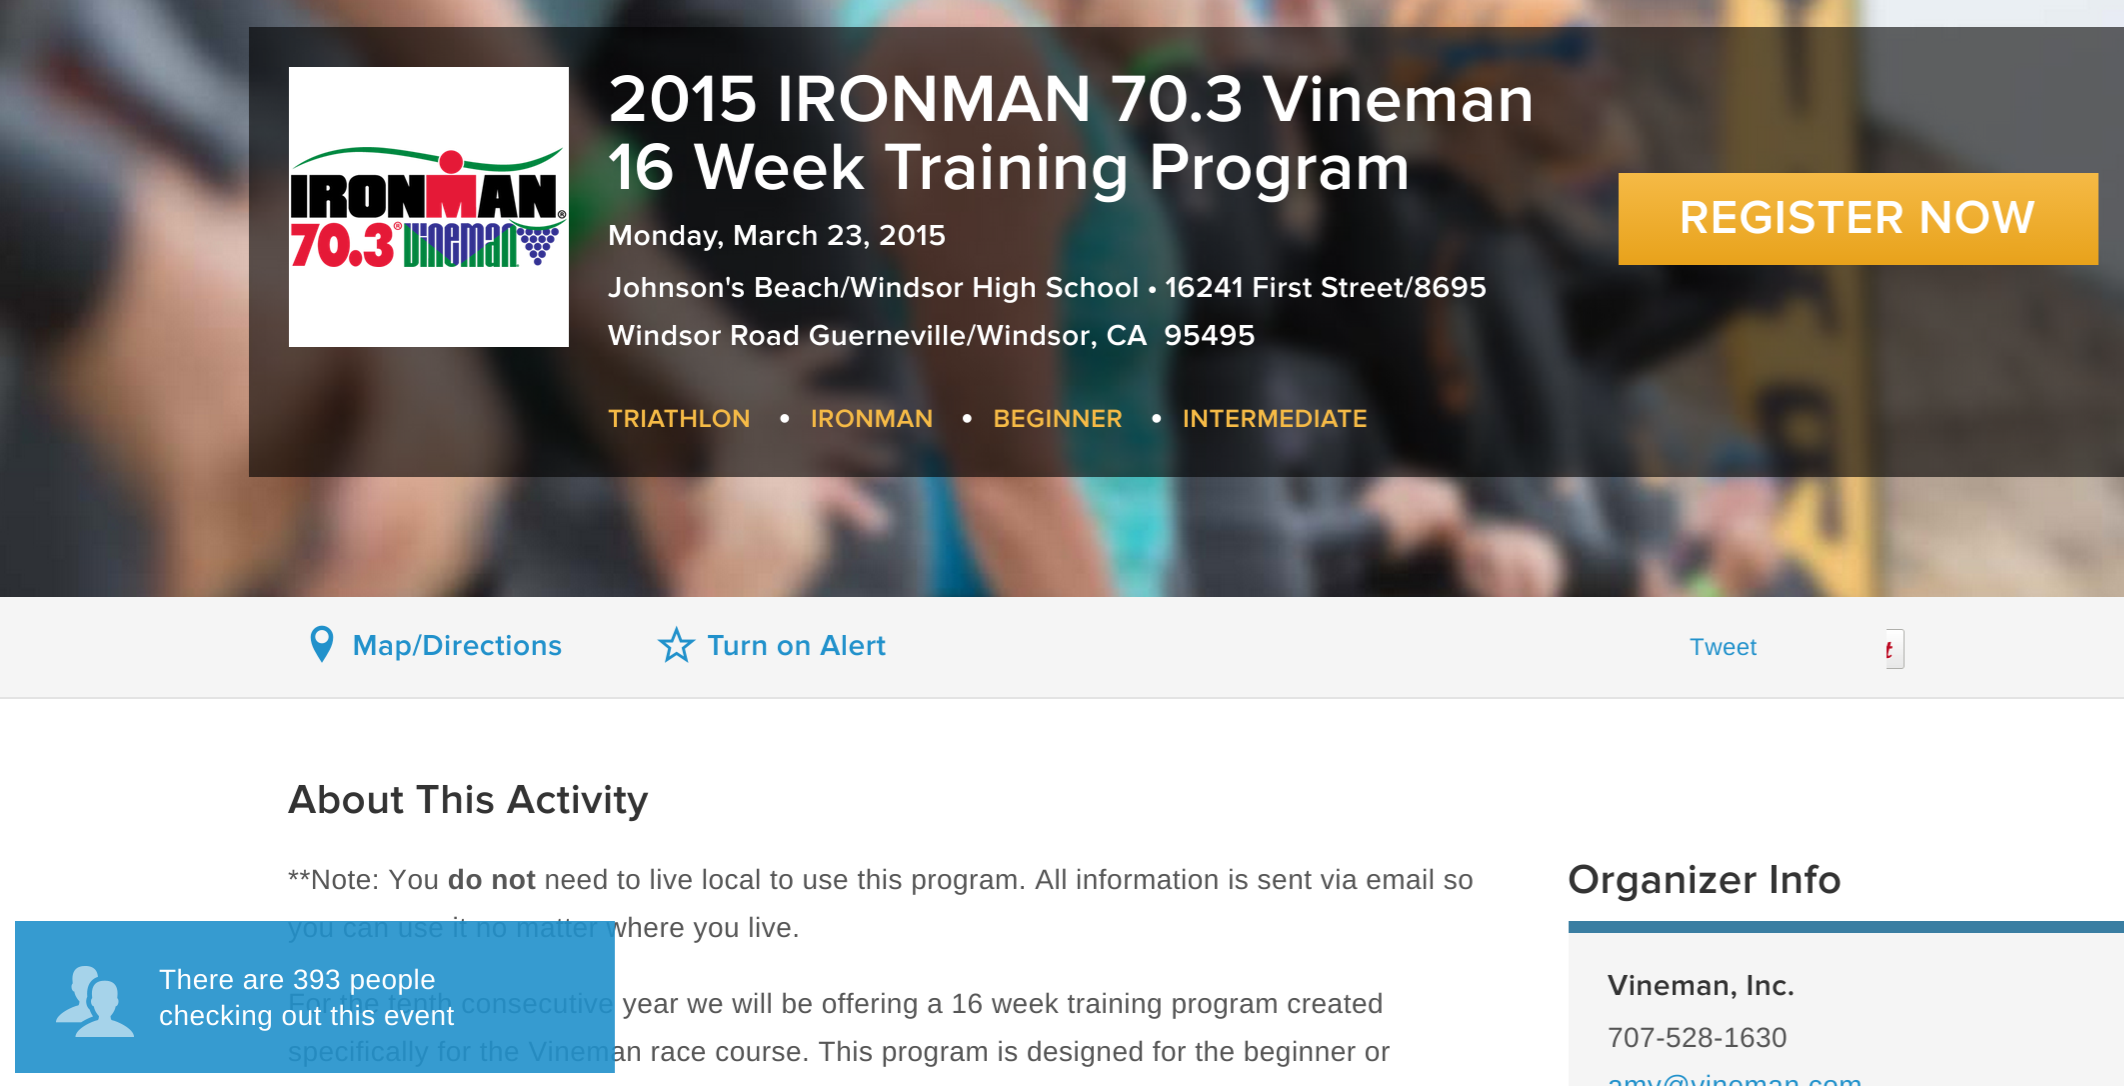 Vineman training program